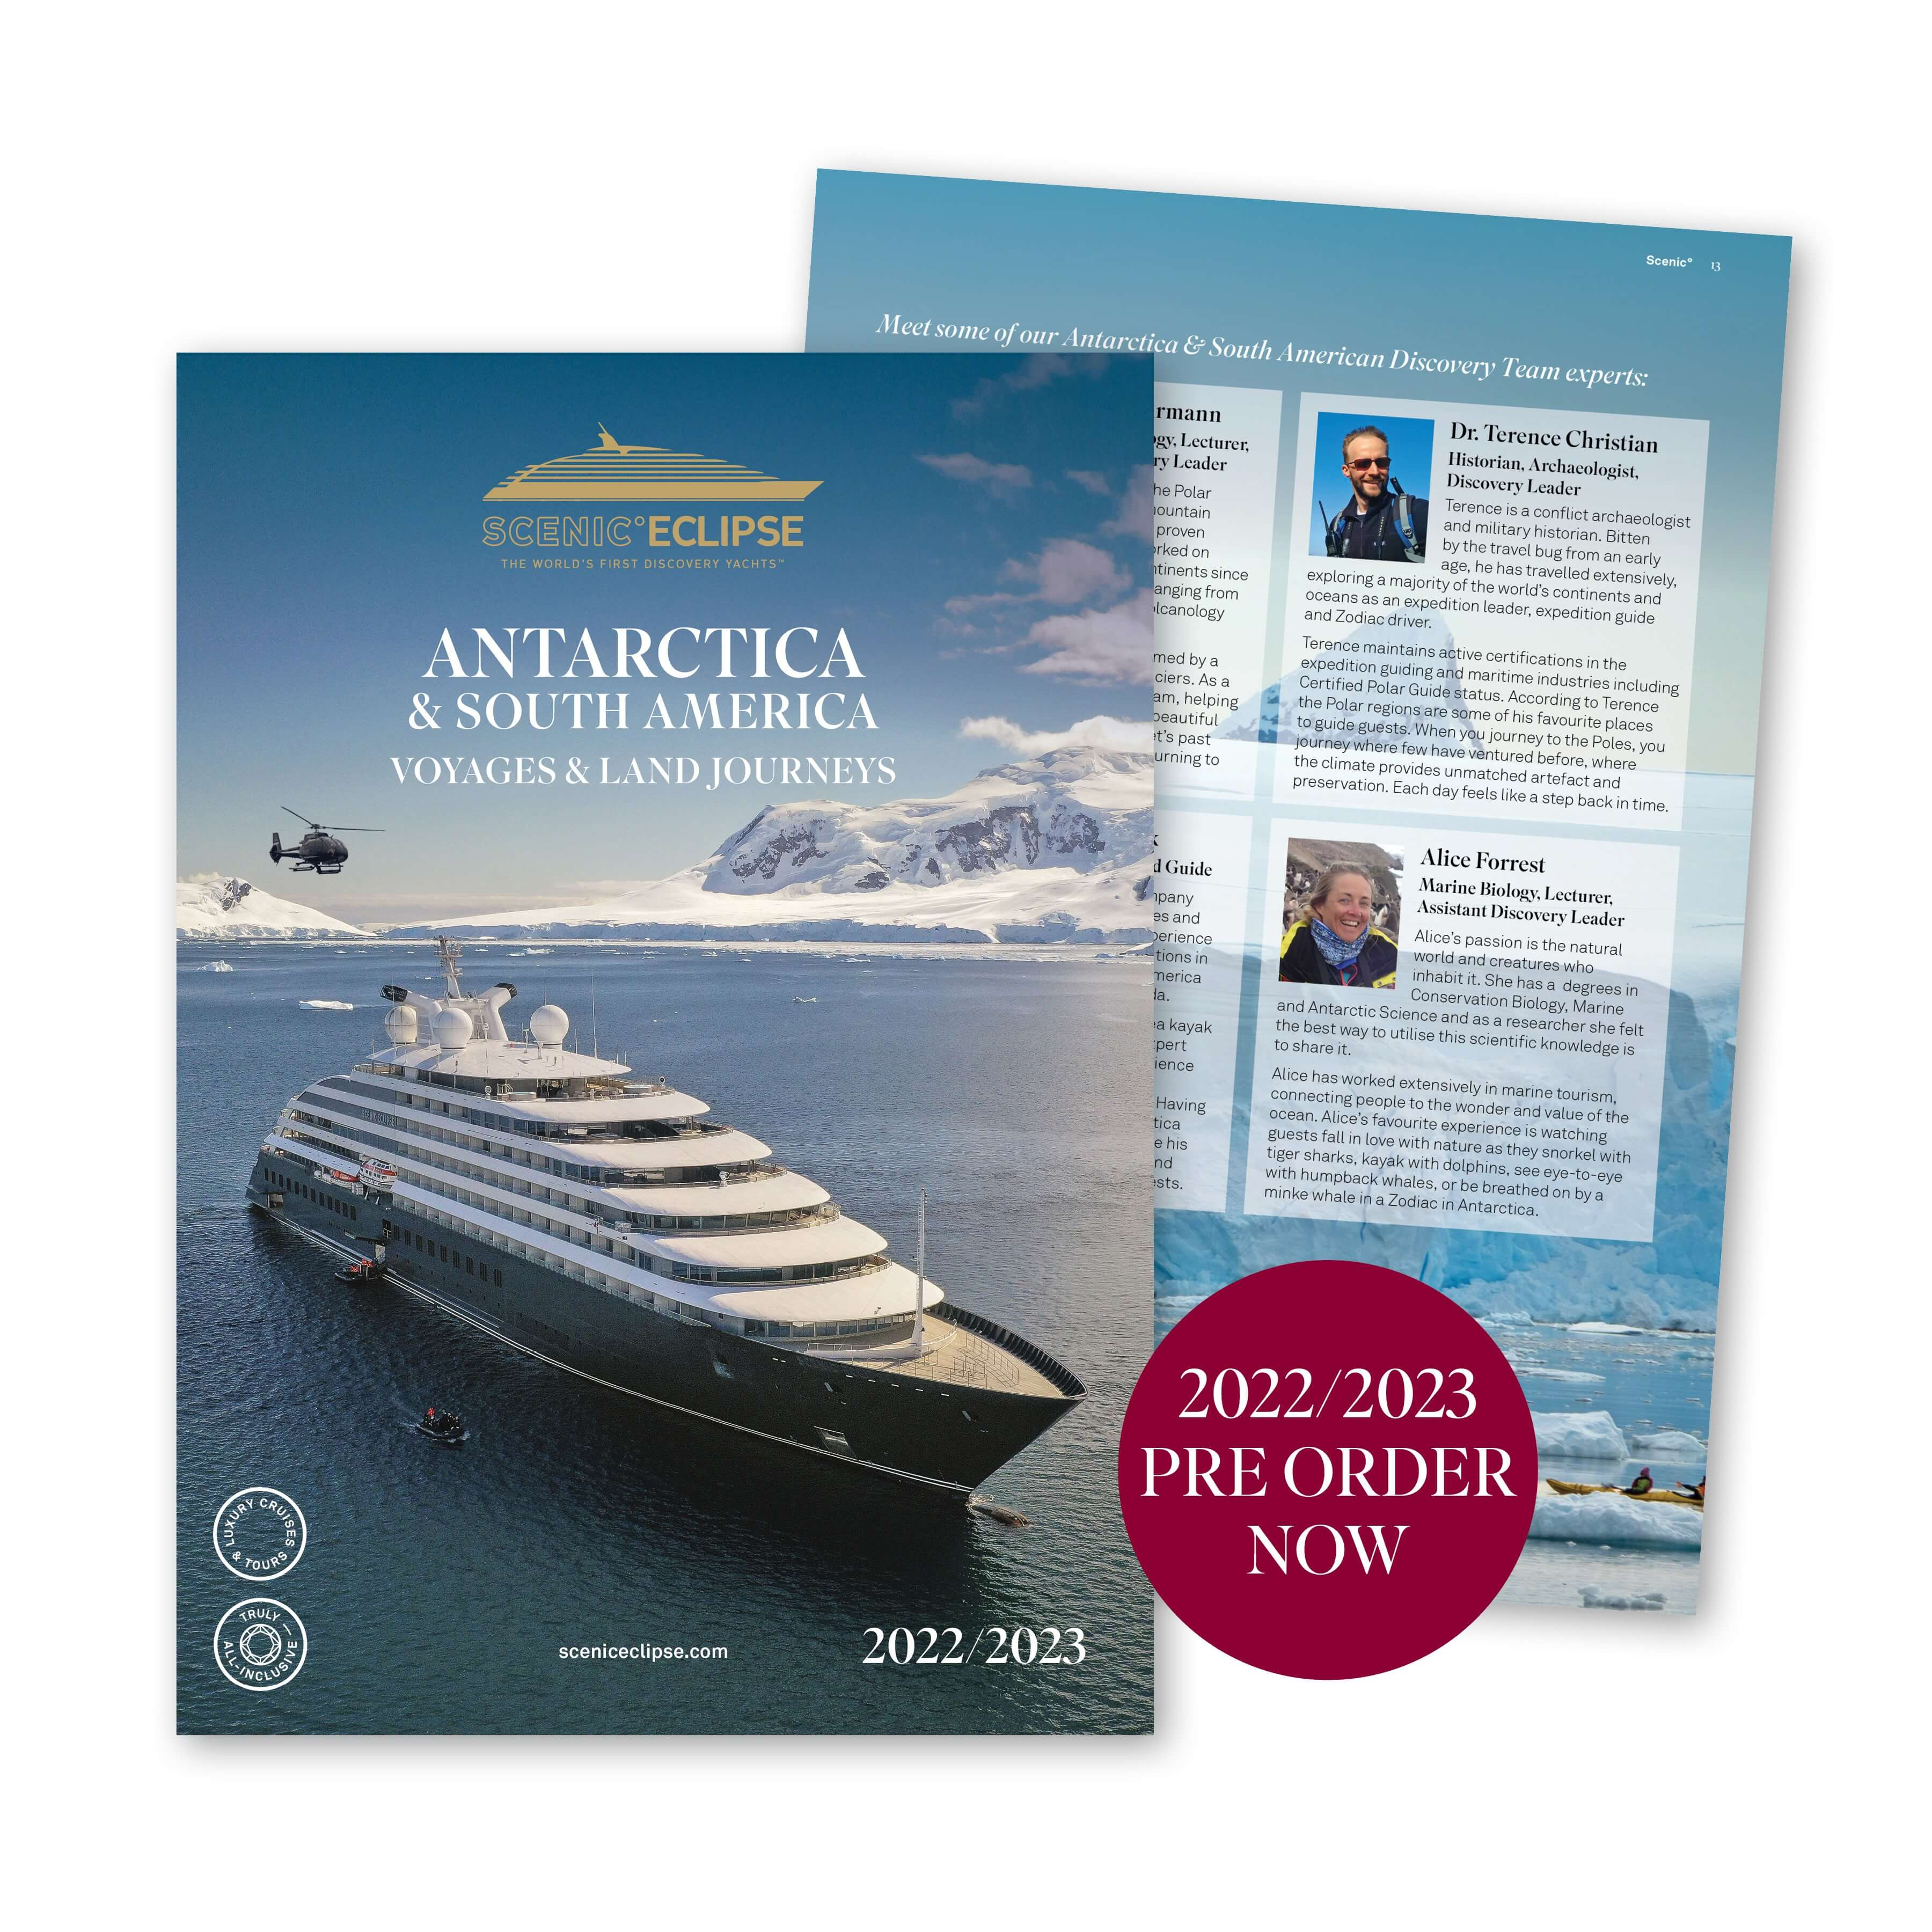 Antarctica and South America 2022-2023 Pre-Order Brochure